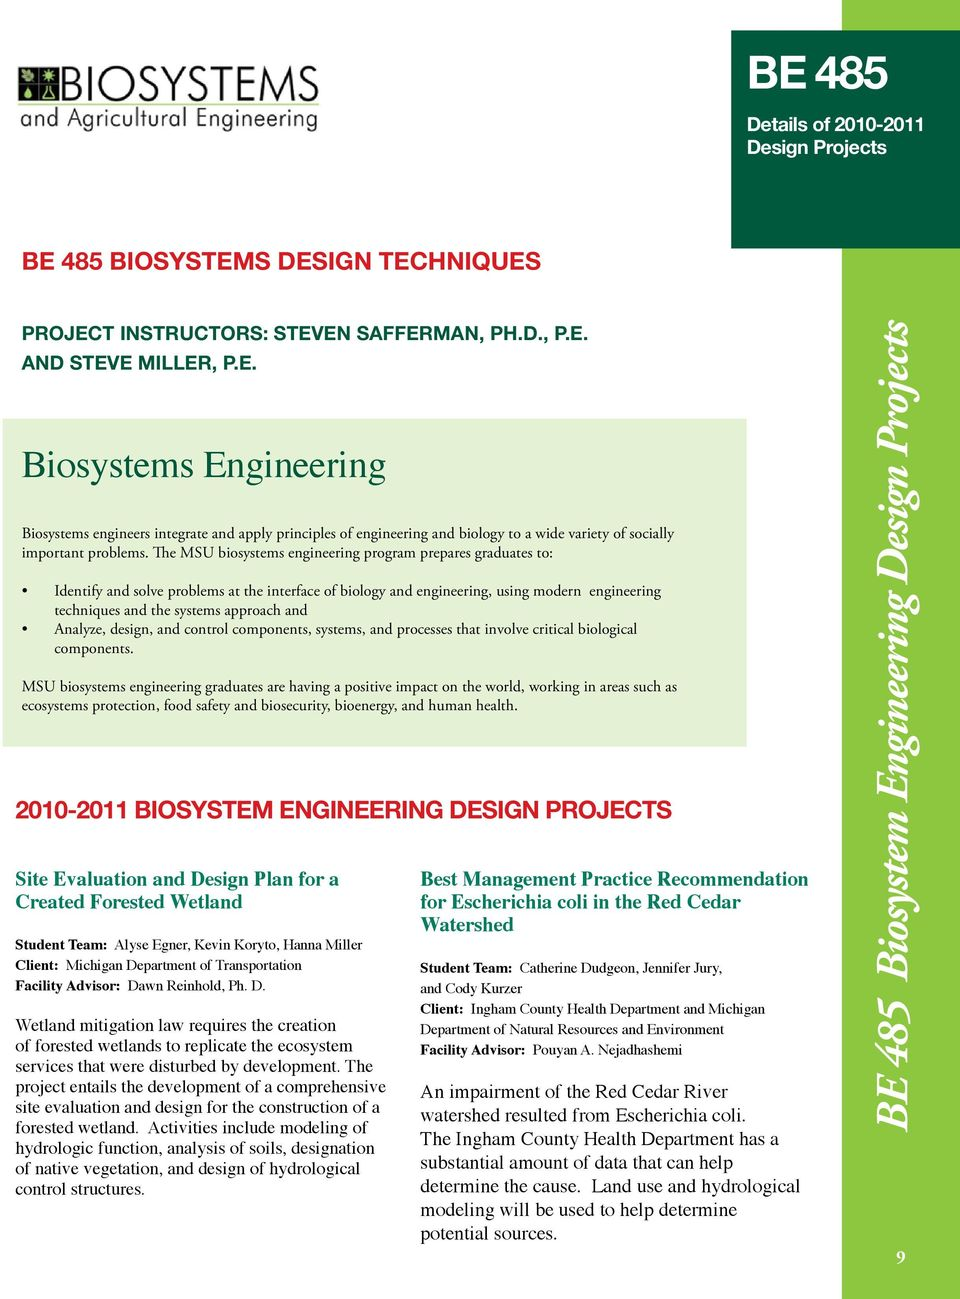 Analyze, design, and control components, systems, and processes that involve critical biological components.